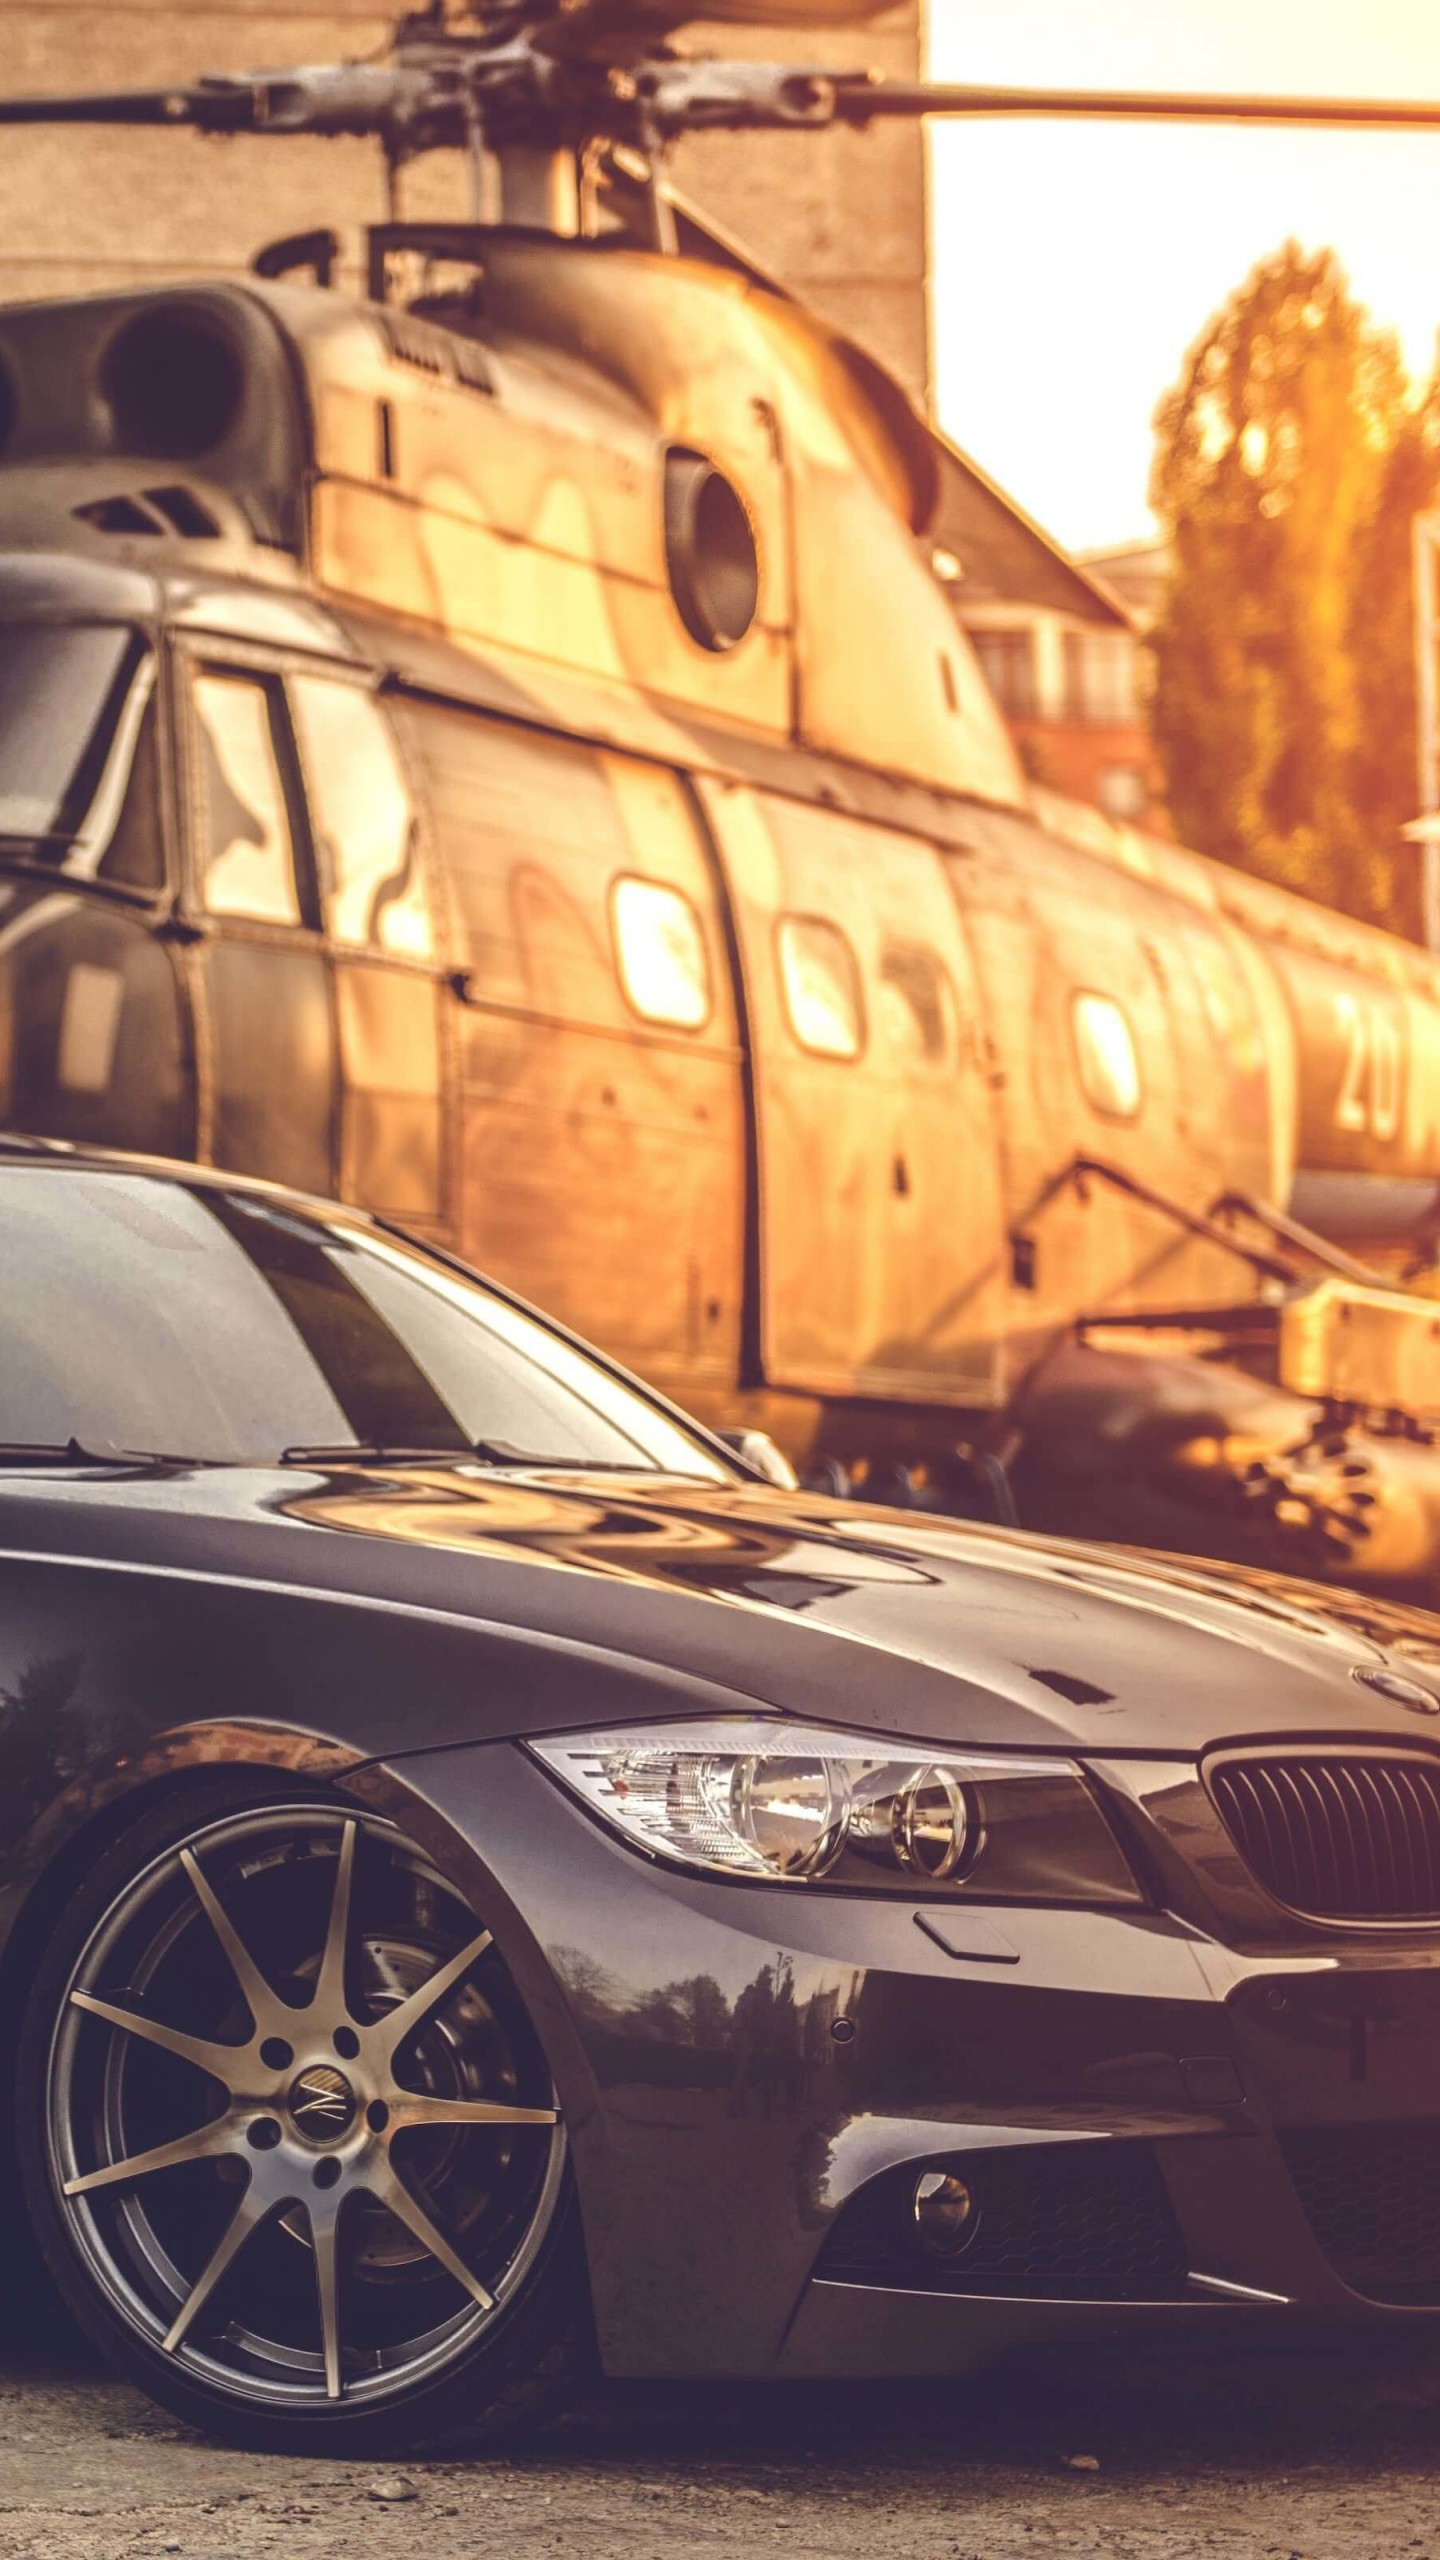 BMW E90 on Z-Performance Wheels Wallpaper for SAMSUNG Galaxy S6